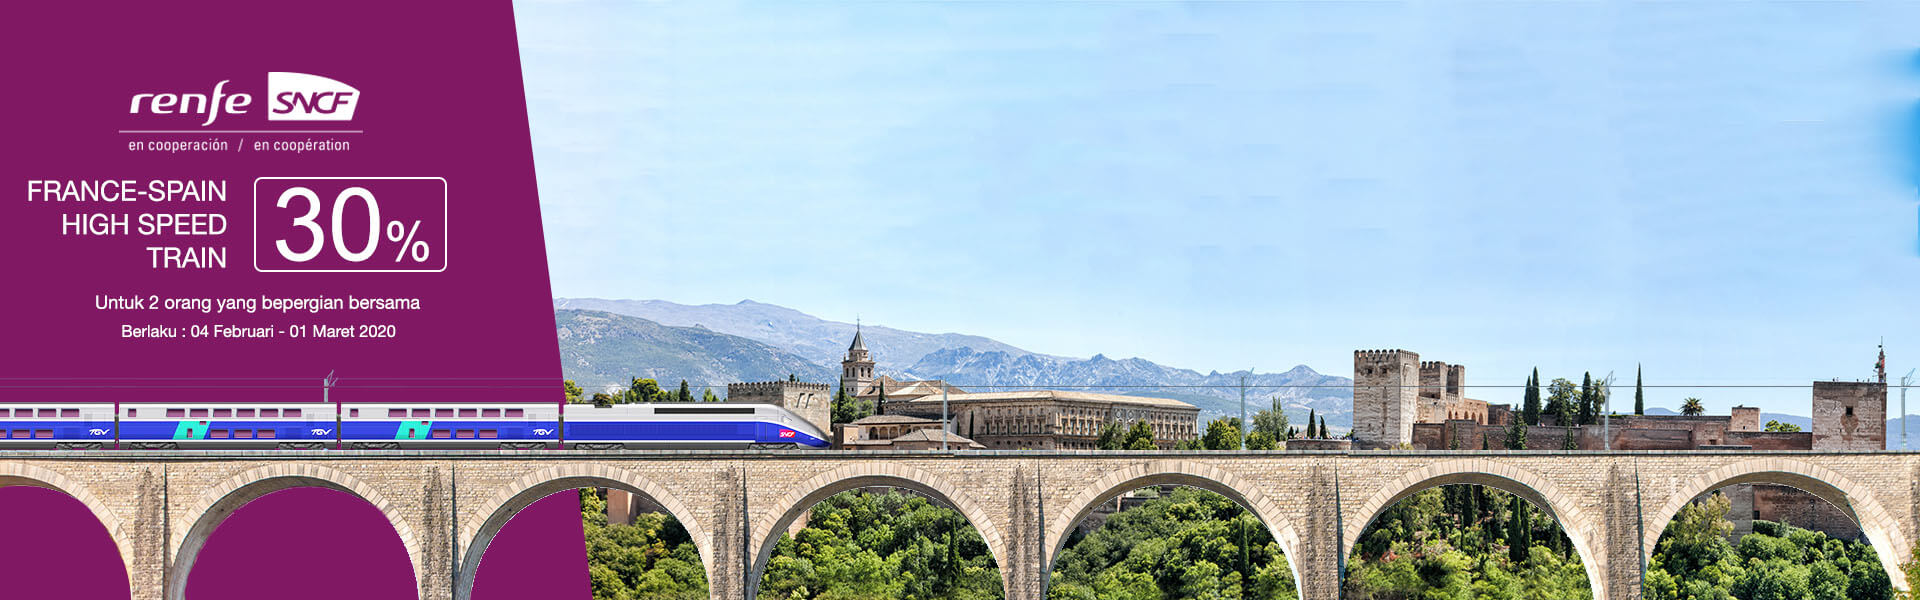 France – Spain High Speed Train 30% Promotion